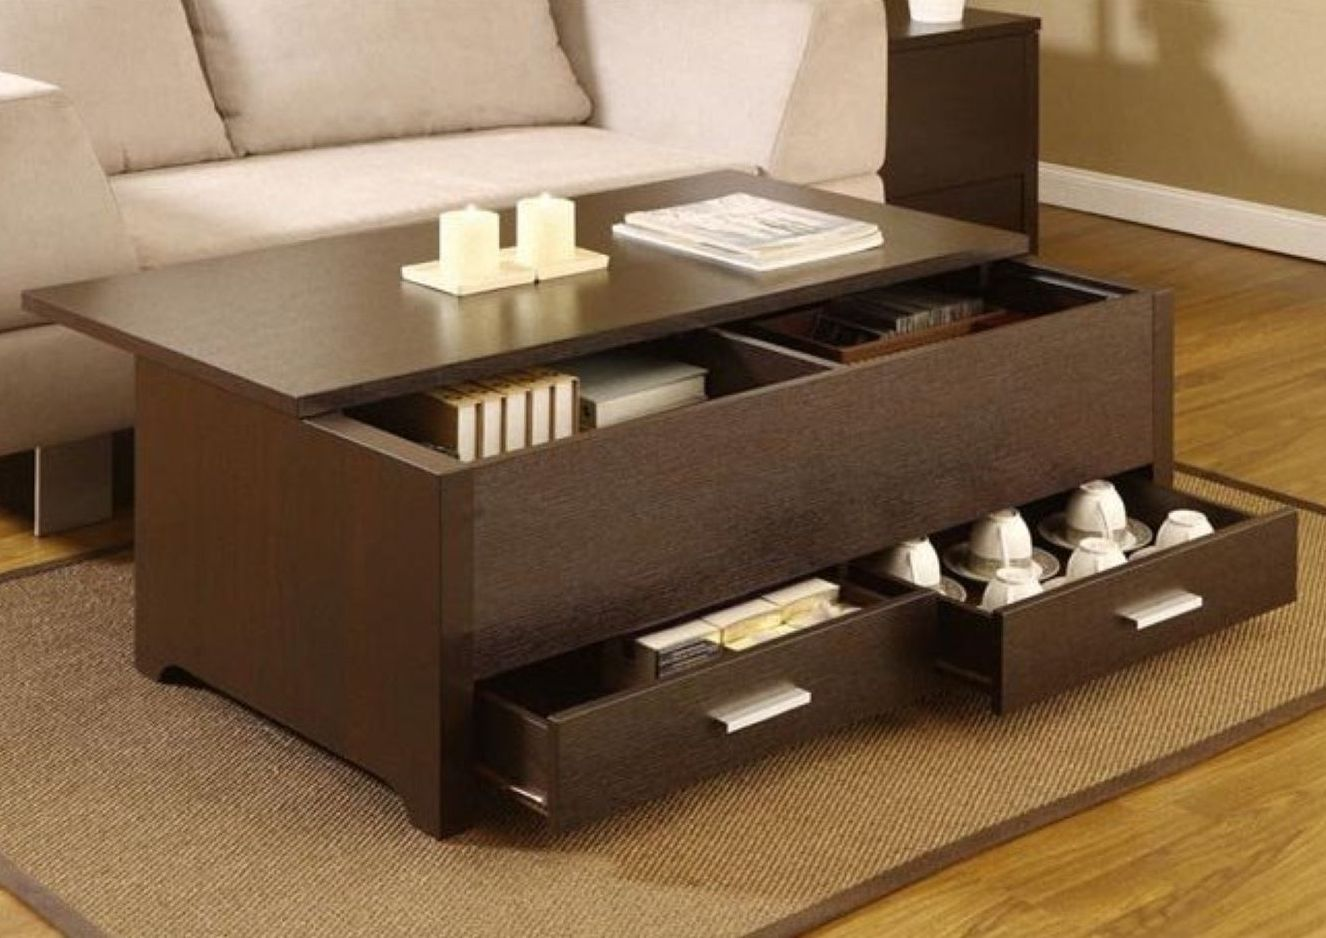 Fullsize Of Coffee Table Storage